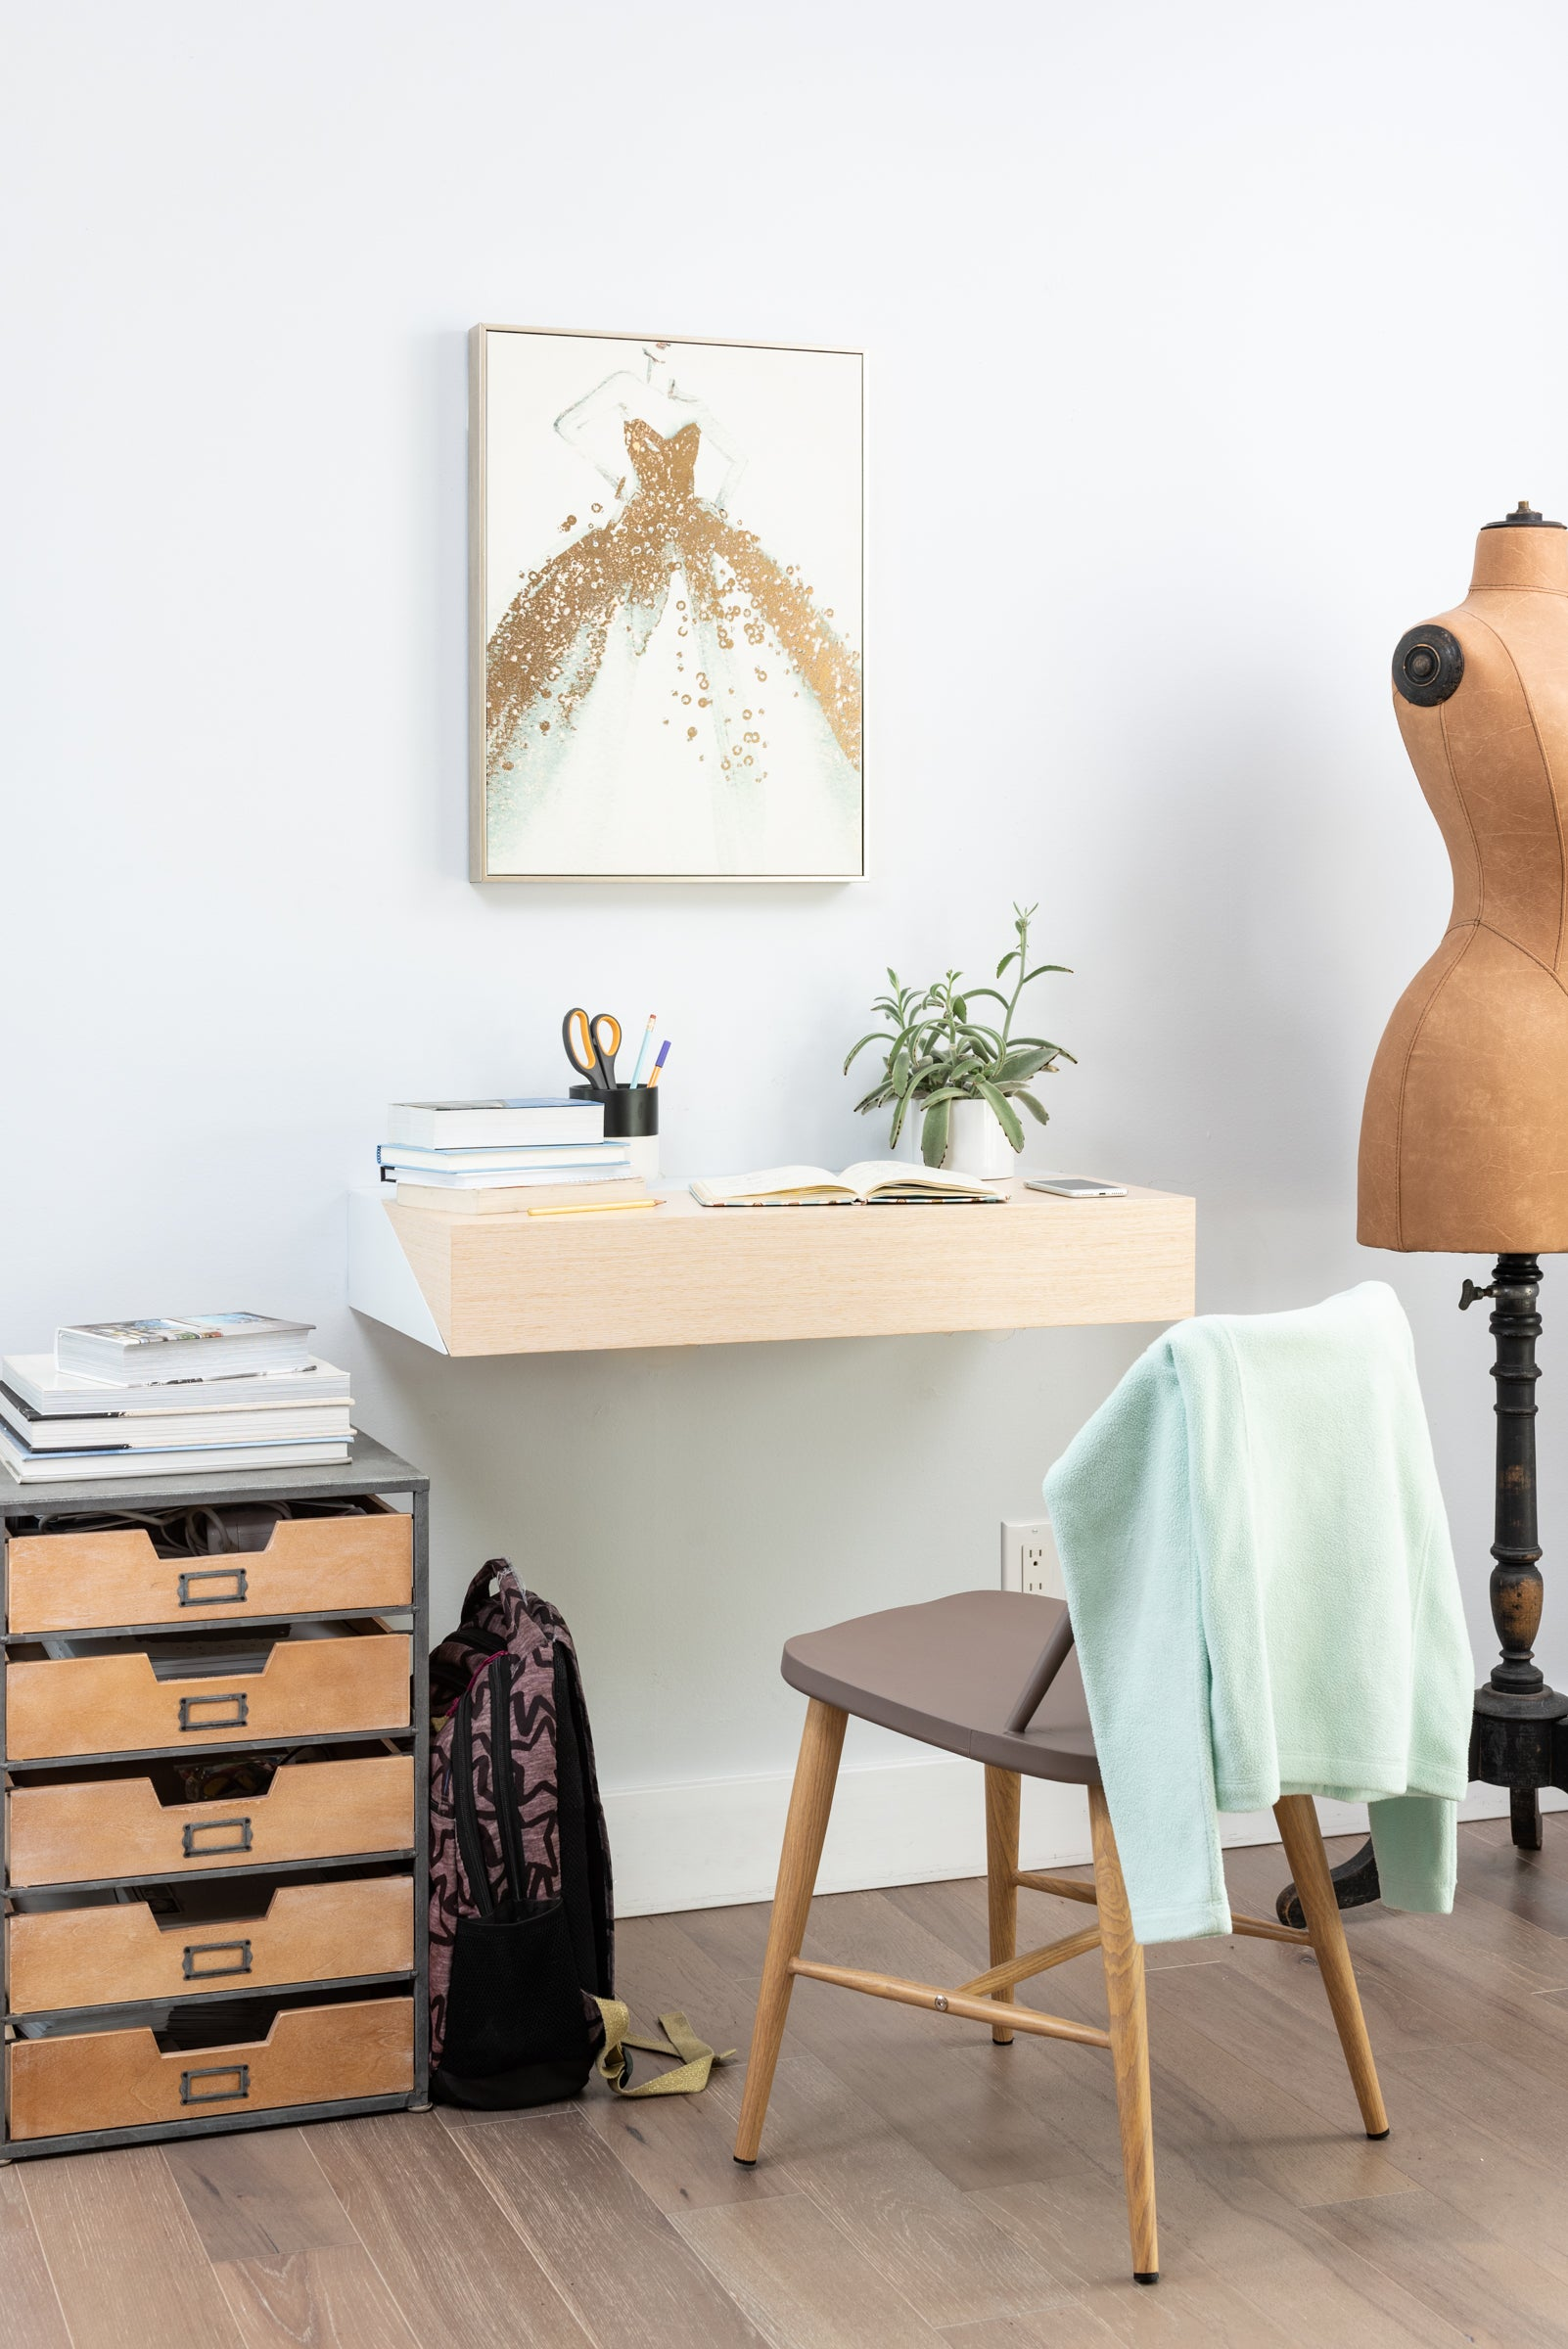 Hideaway Wall Desk Rift Oak Ideal For Home Office Orange22 Modern Contract And Residential Wall Desks And Benches